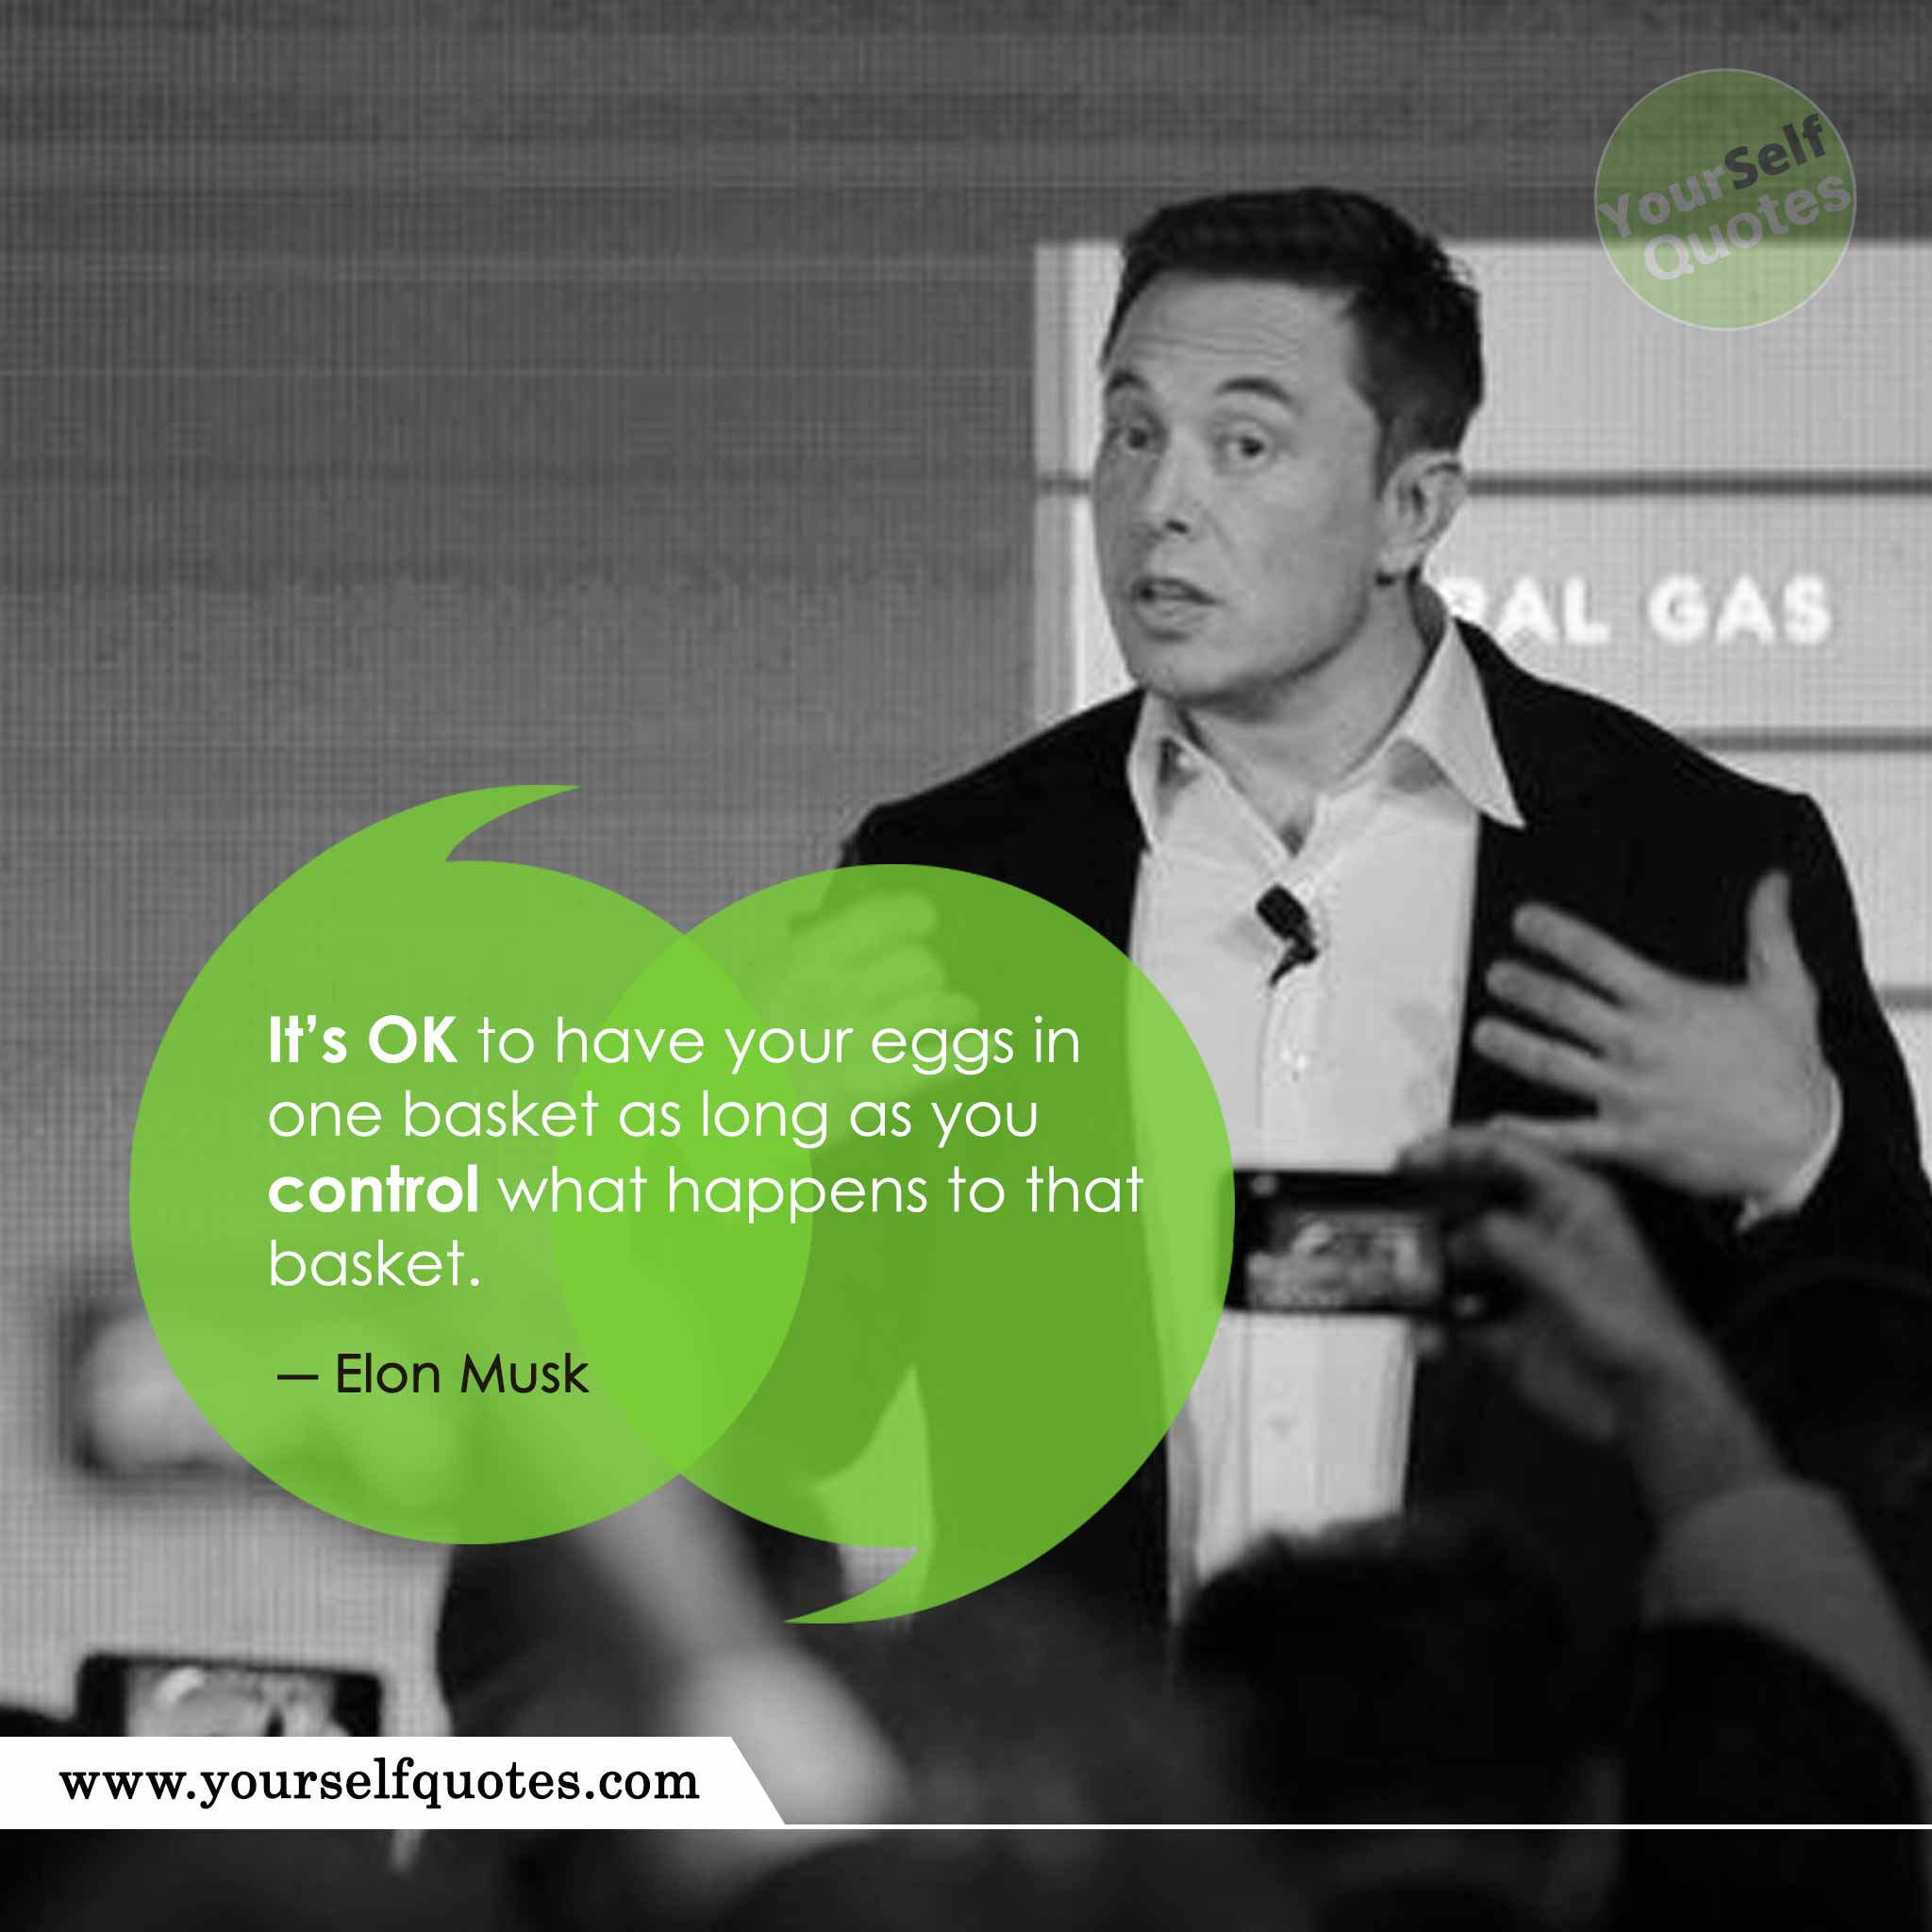 Elon Musk Quotes To Inspire